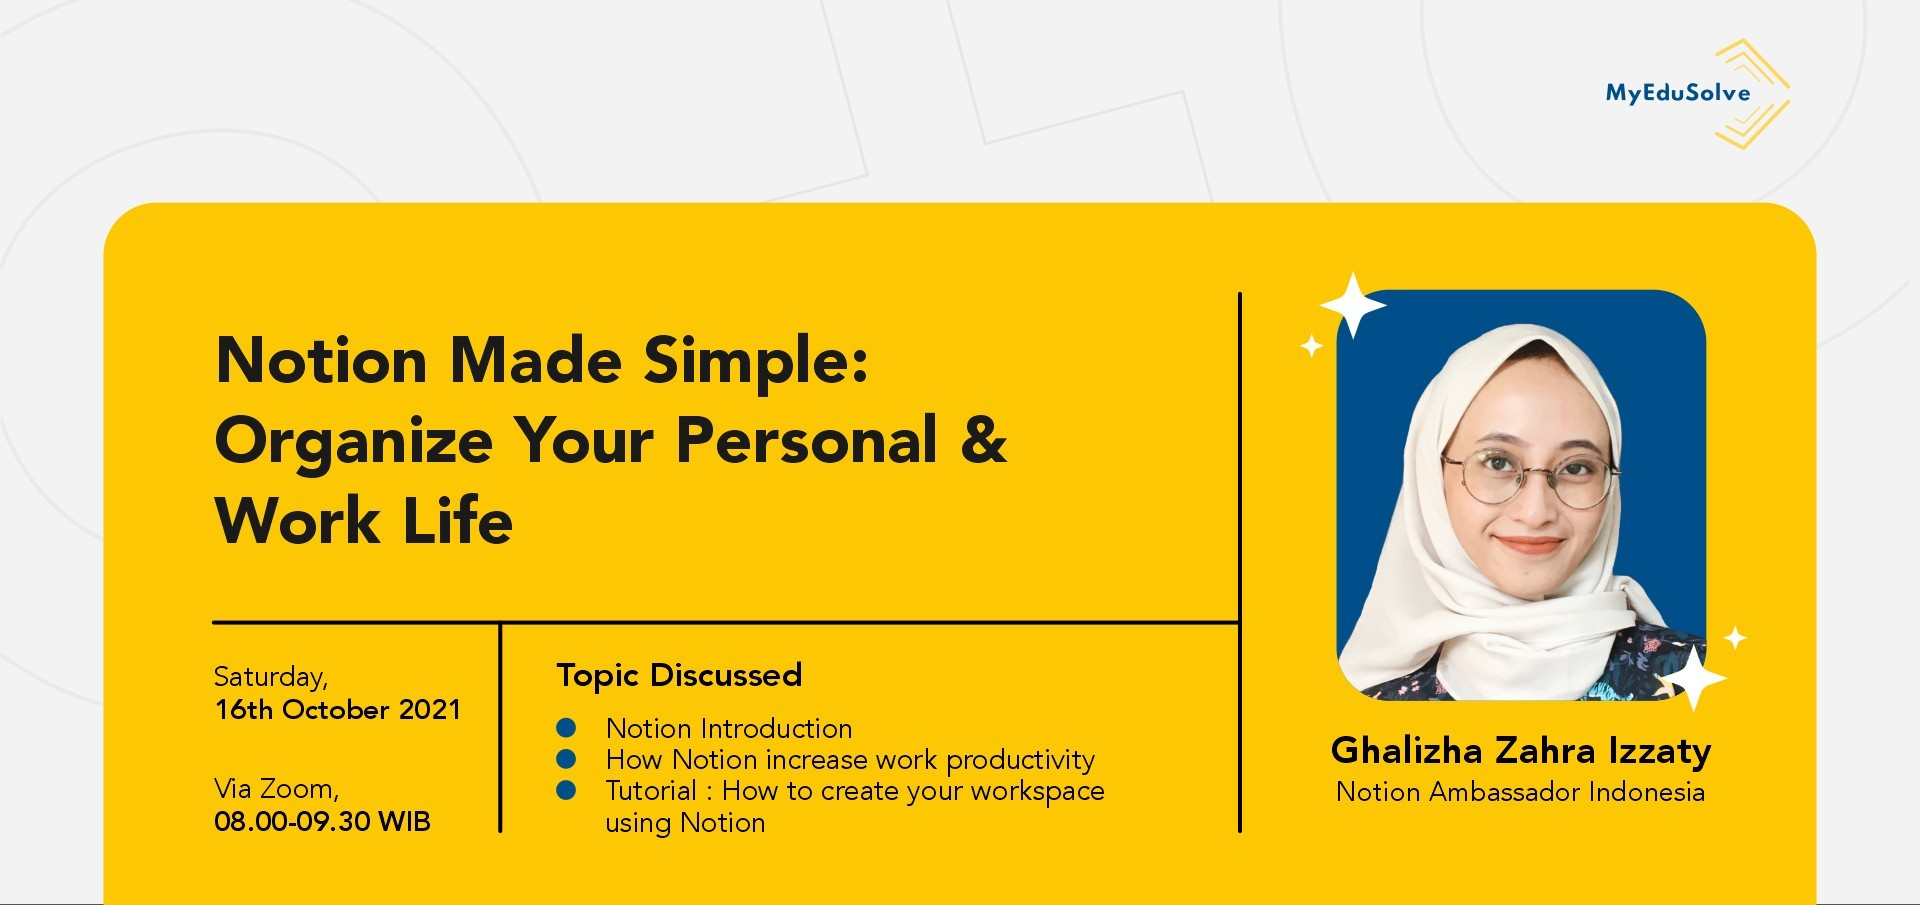 Notion Made Simple: Organize Your Personal & Work Life